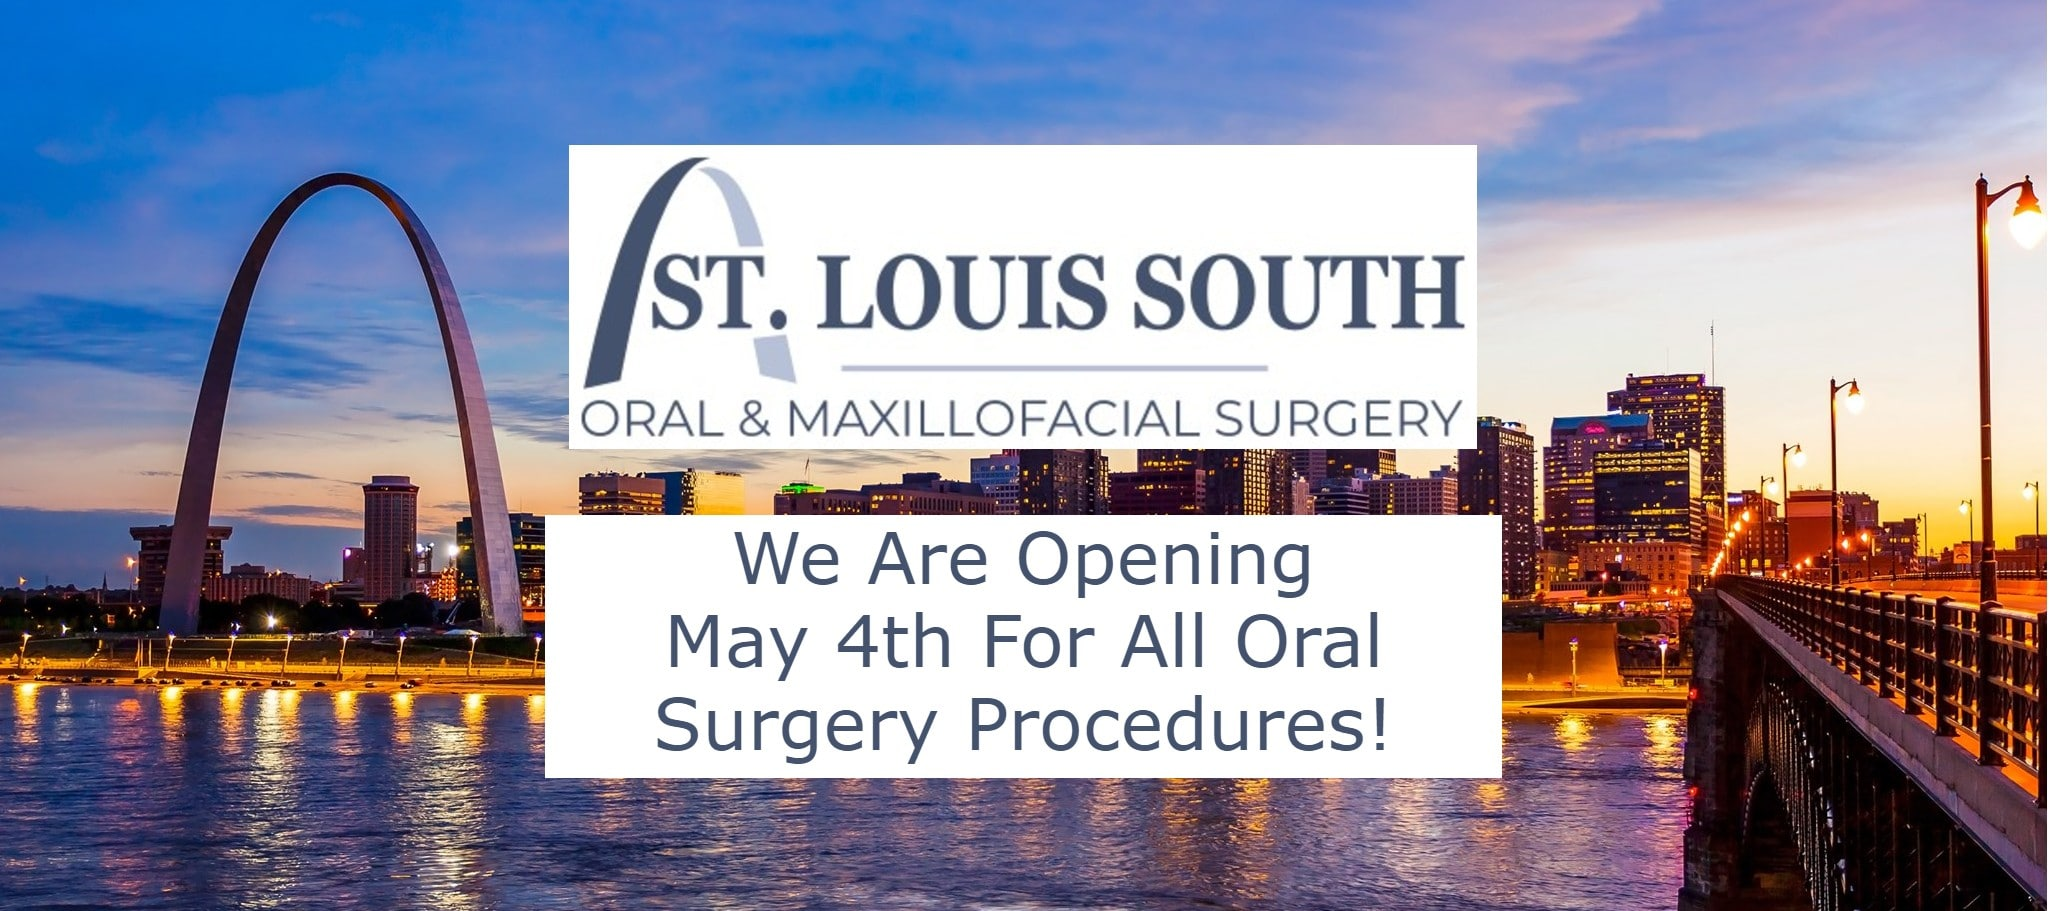 St-Louis-Oral-Surgery-Opening-May-4th-St-Louis-Wisdom-Teeth-Removal-COVID-19-Coronavirus-Update